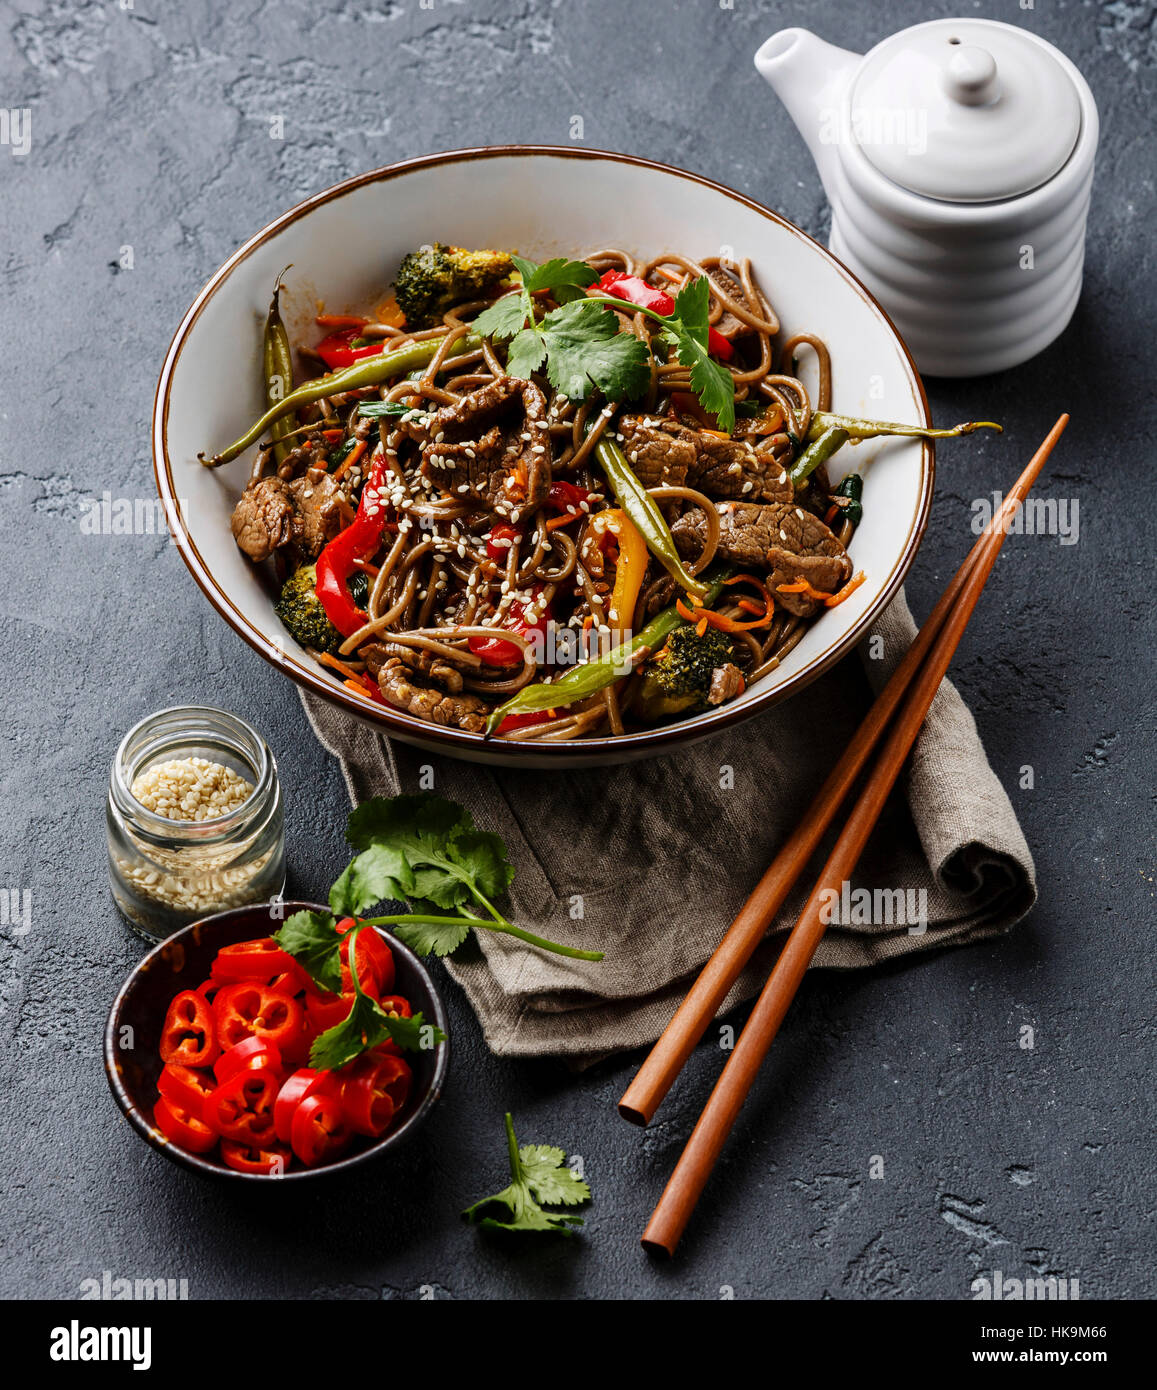 Stir fry noodles soba with beef and vegetables in bowl on dark stone background - Stock Image